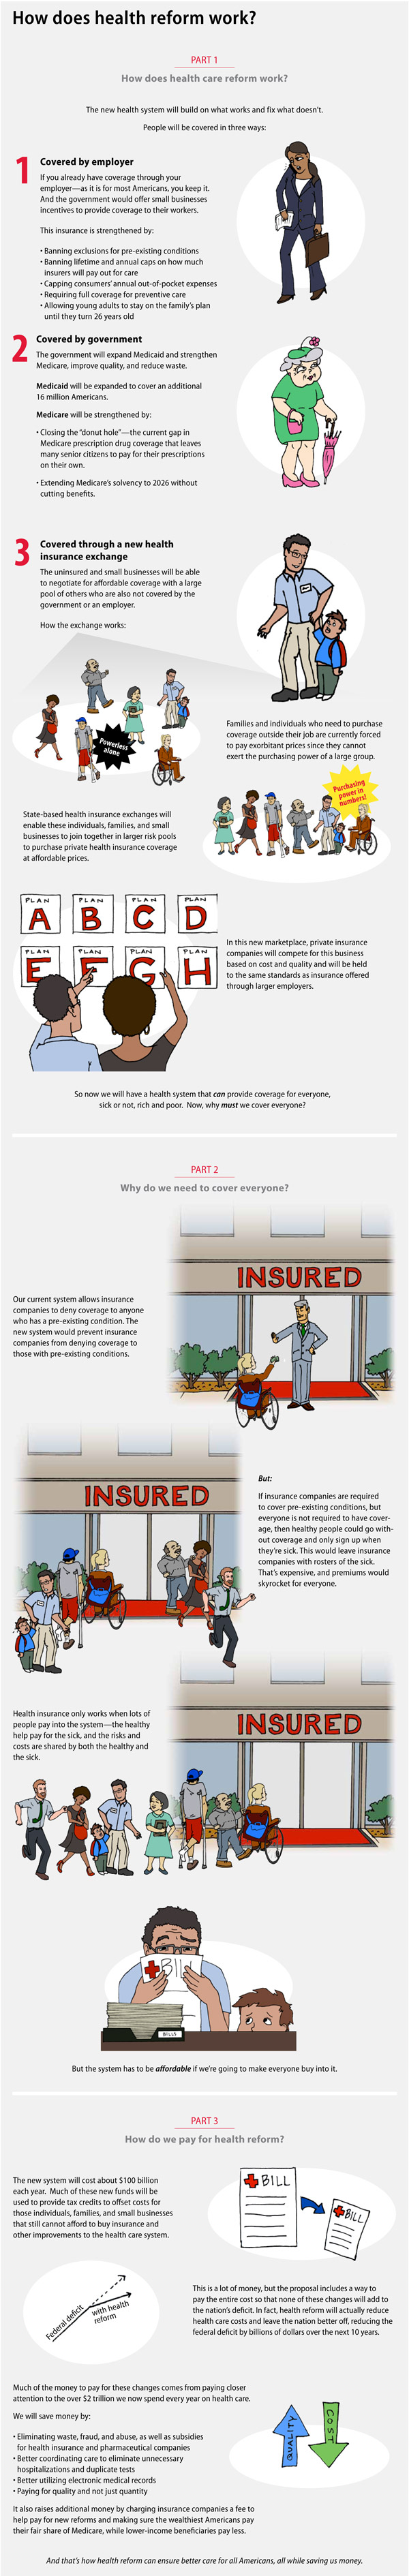 Infographic on how health care reform works